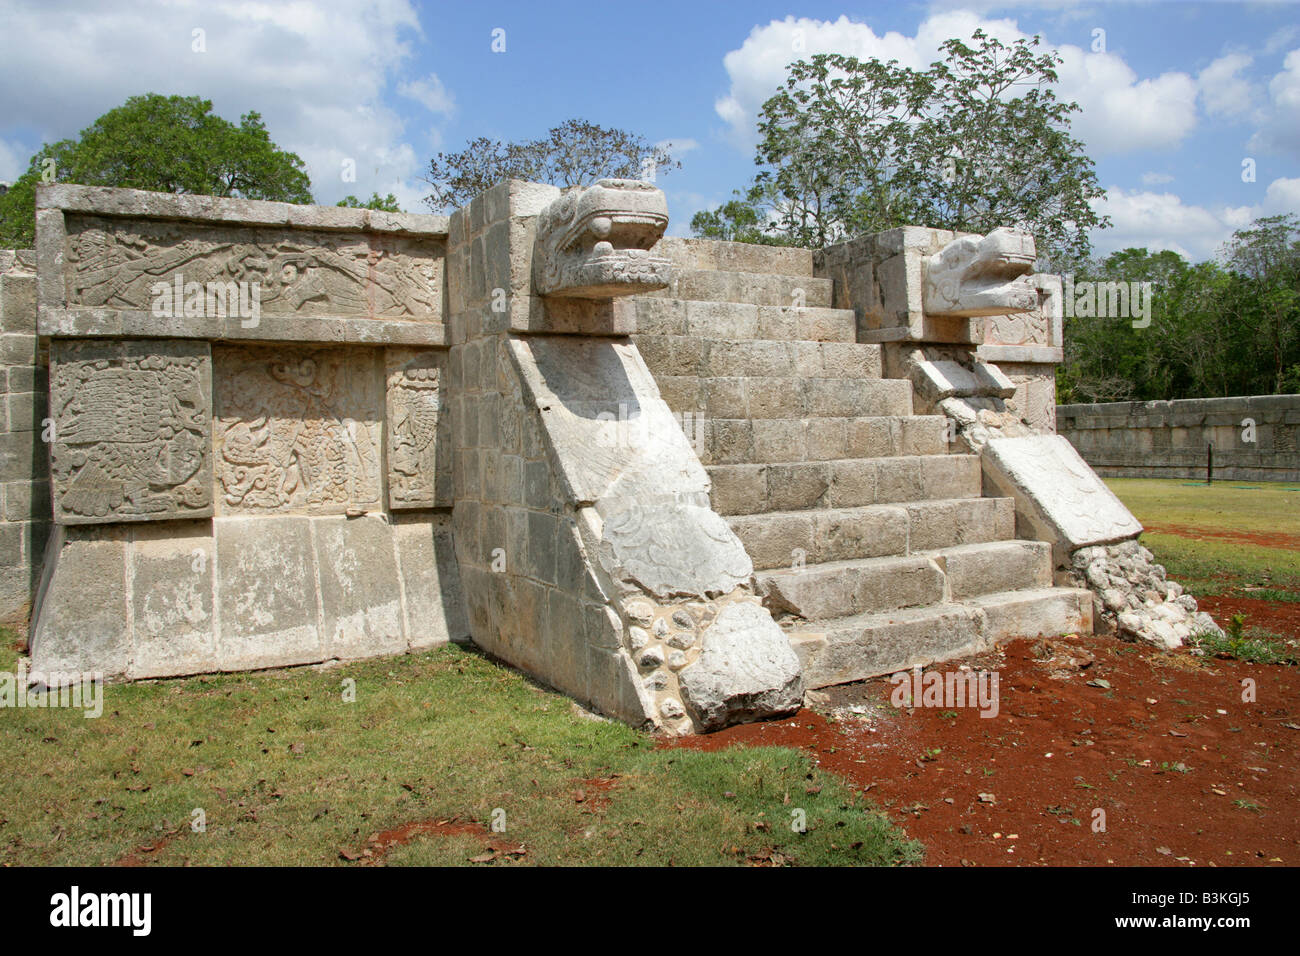 The Platform of the Eagles and Jaguars, Chichen Itza Archeological Site, Yucatan Peninsular, Mexico Stock Photo